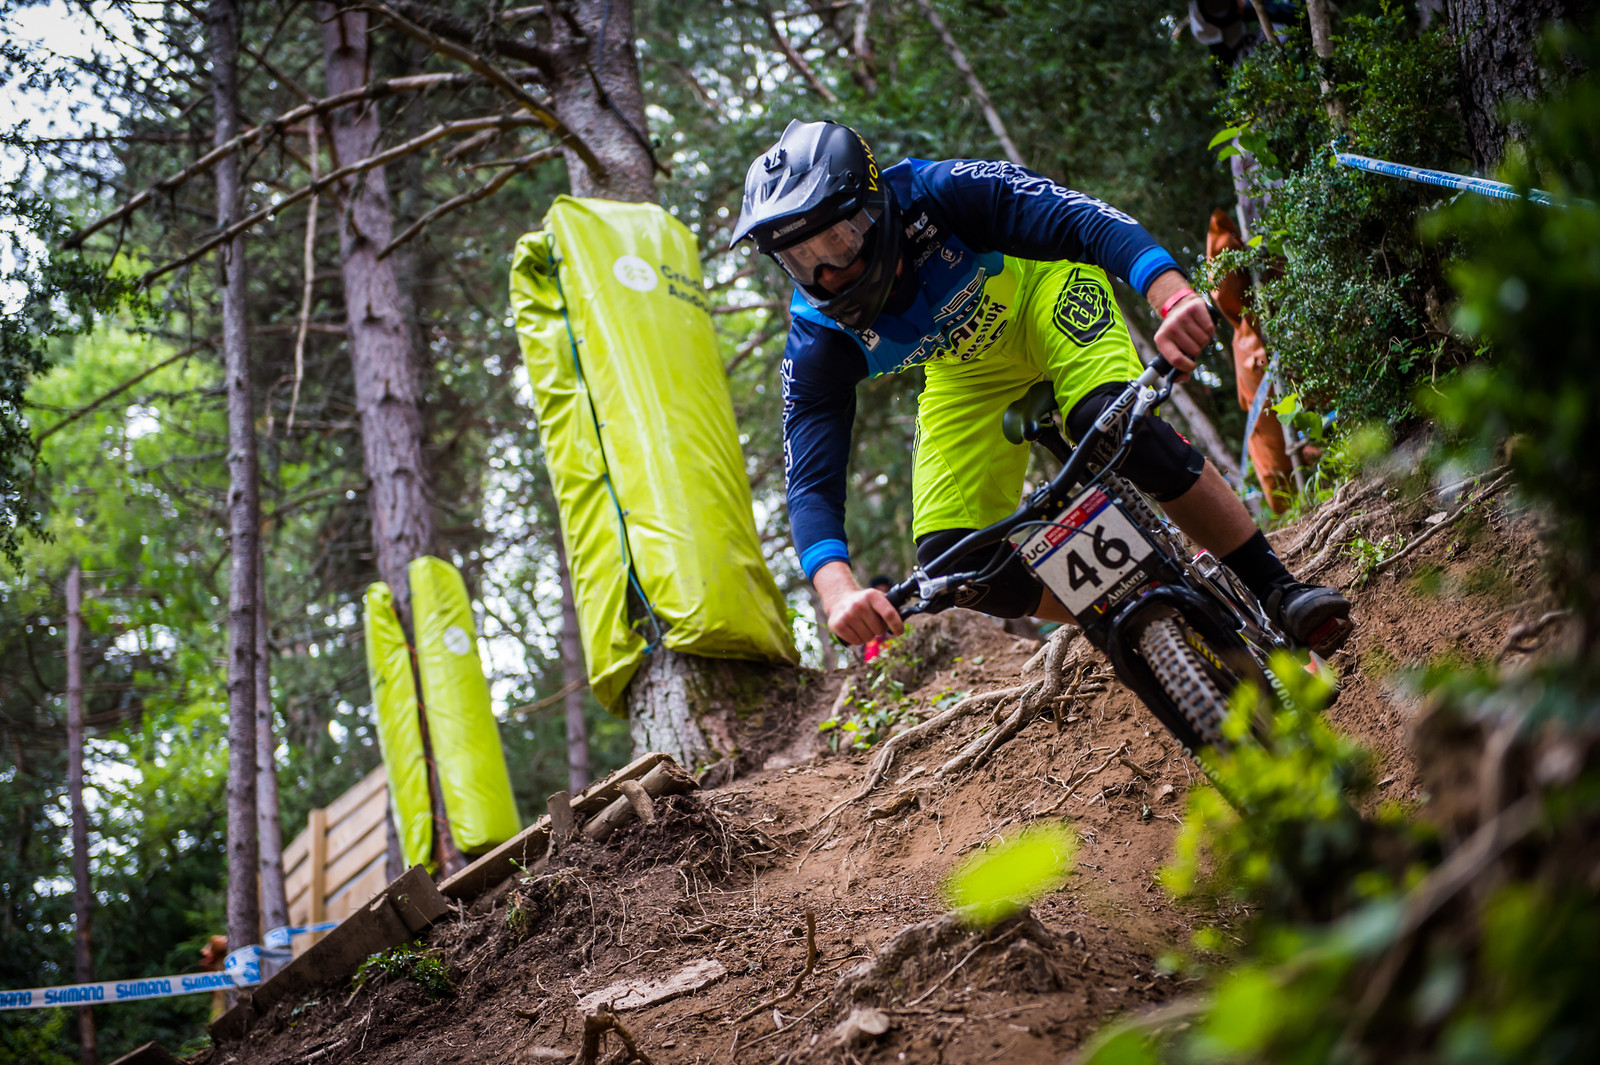 Dean Lucas Finals - iceman2058 - Mountain Biking Pictures - Vital MTB